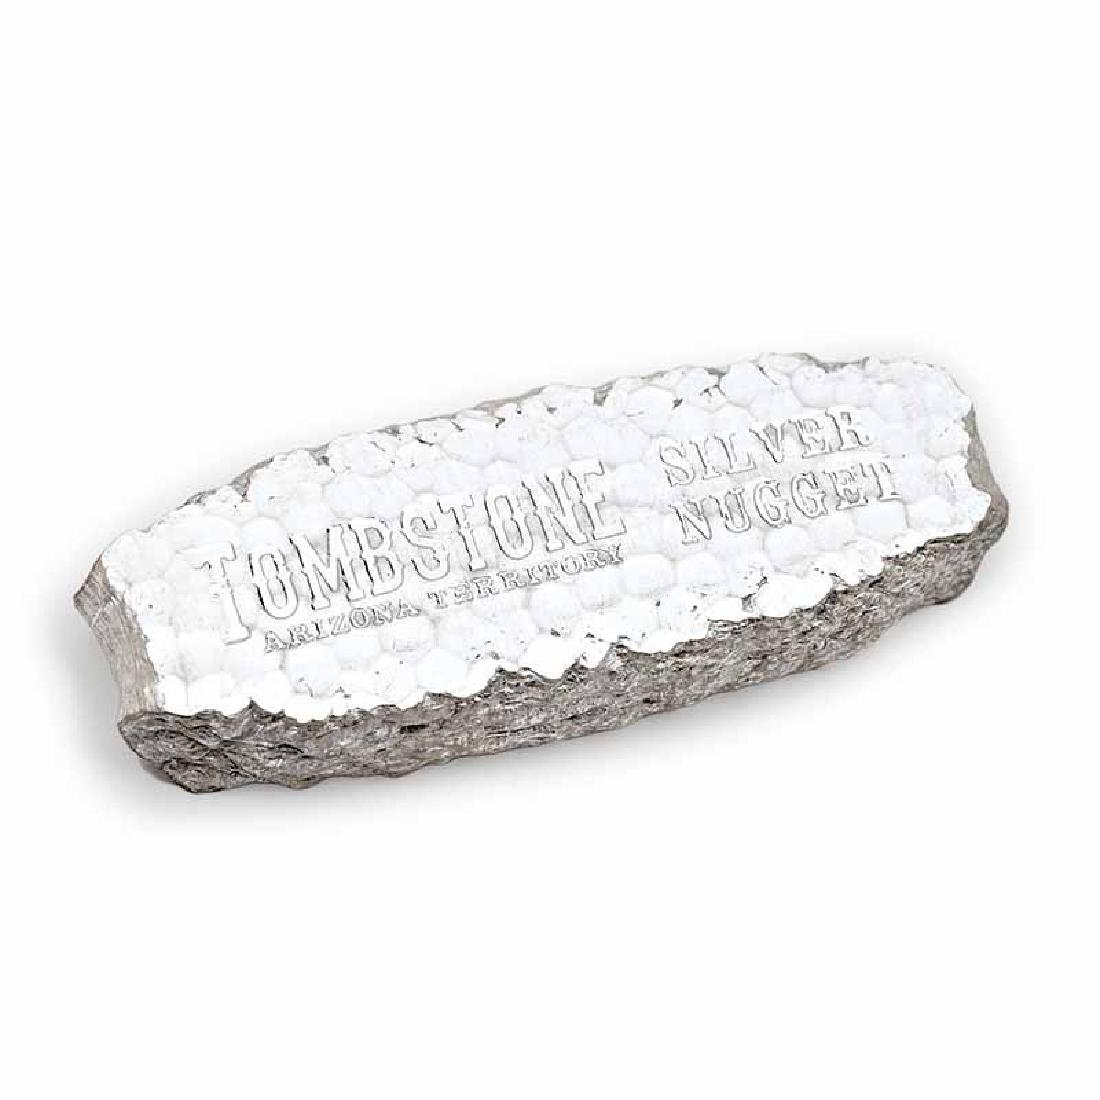 10 oz Scottsdale Tombstone Silver Nugget Bar